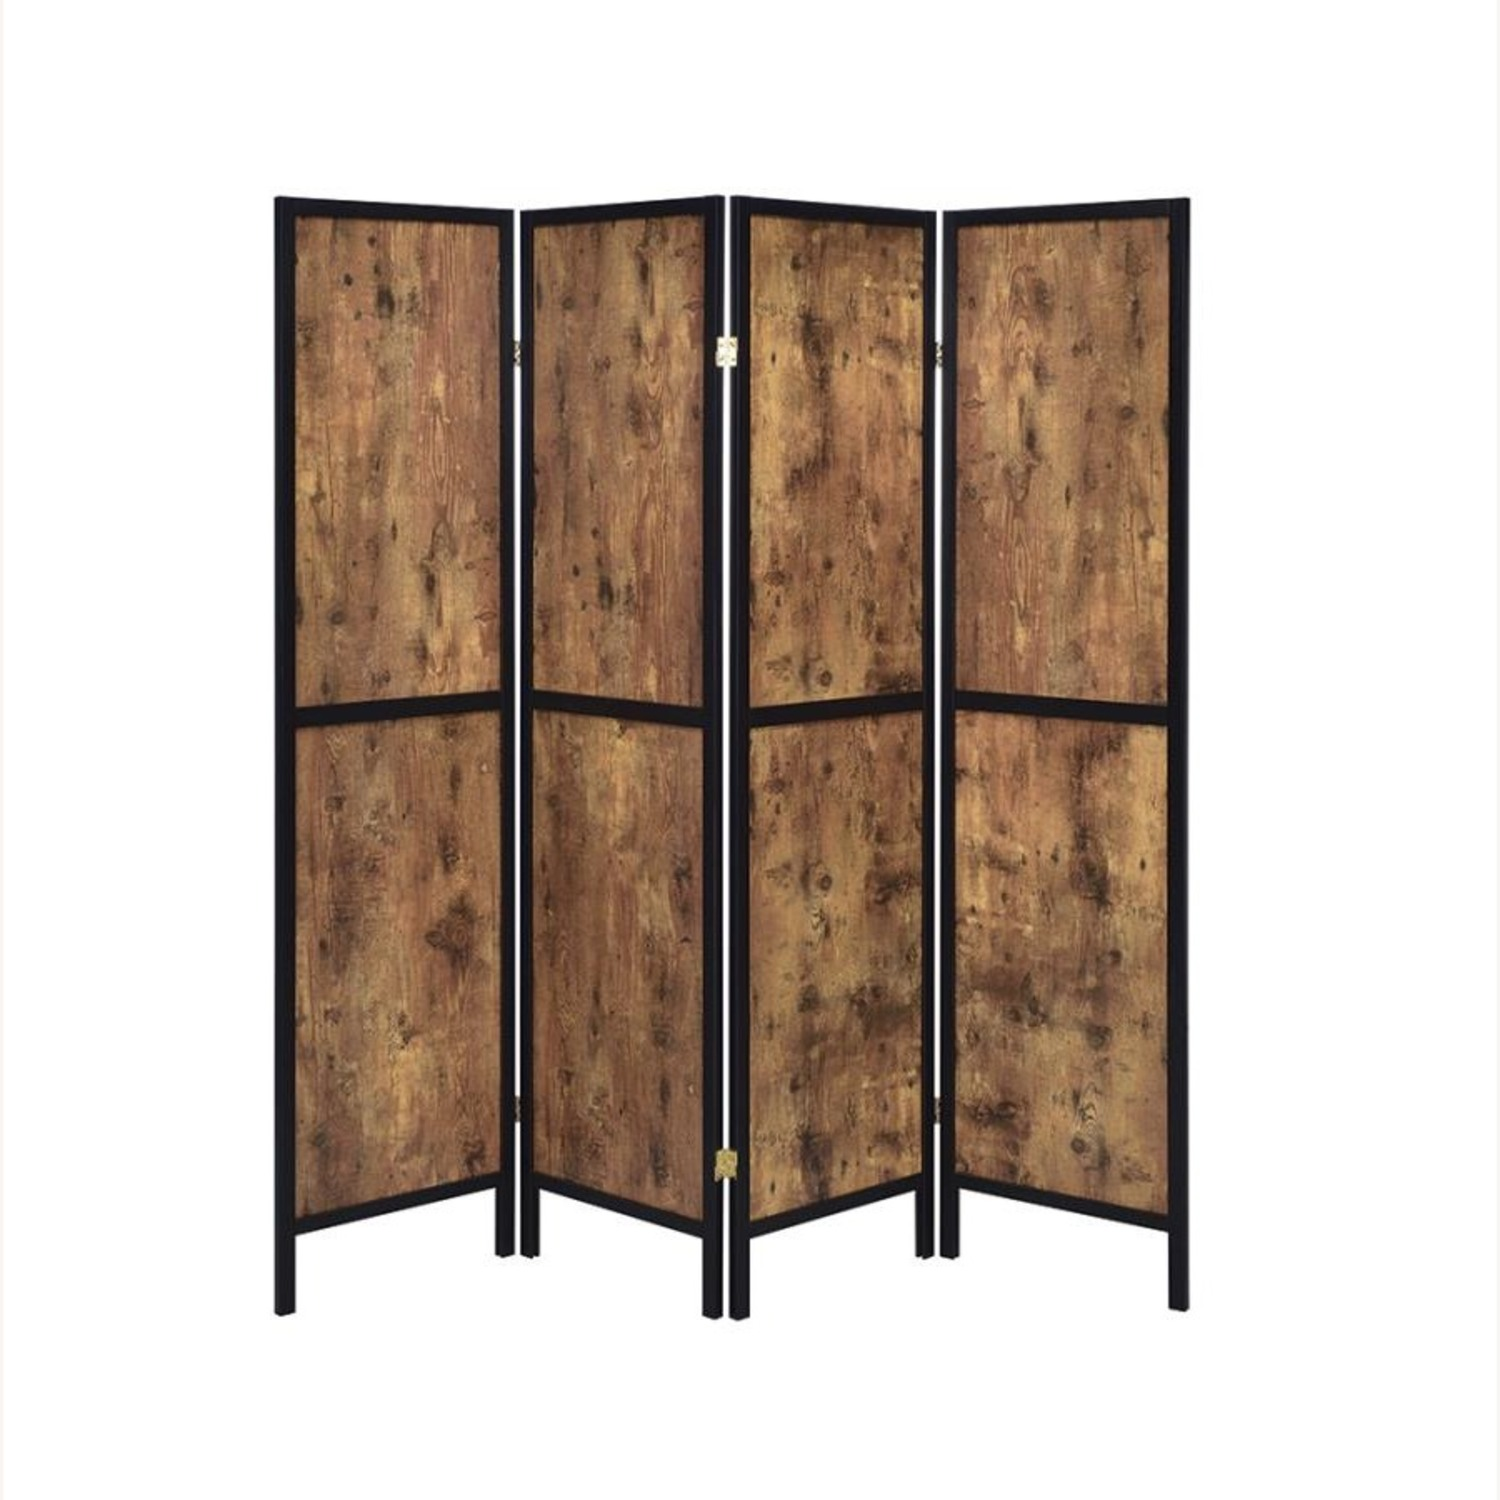 Four-Panel Folding Screen In Antique Nutmeg - image-0